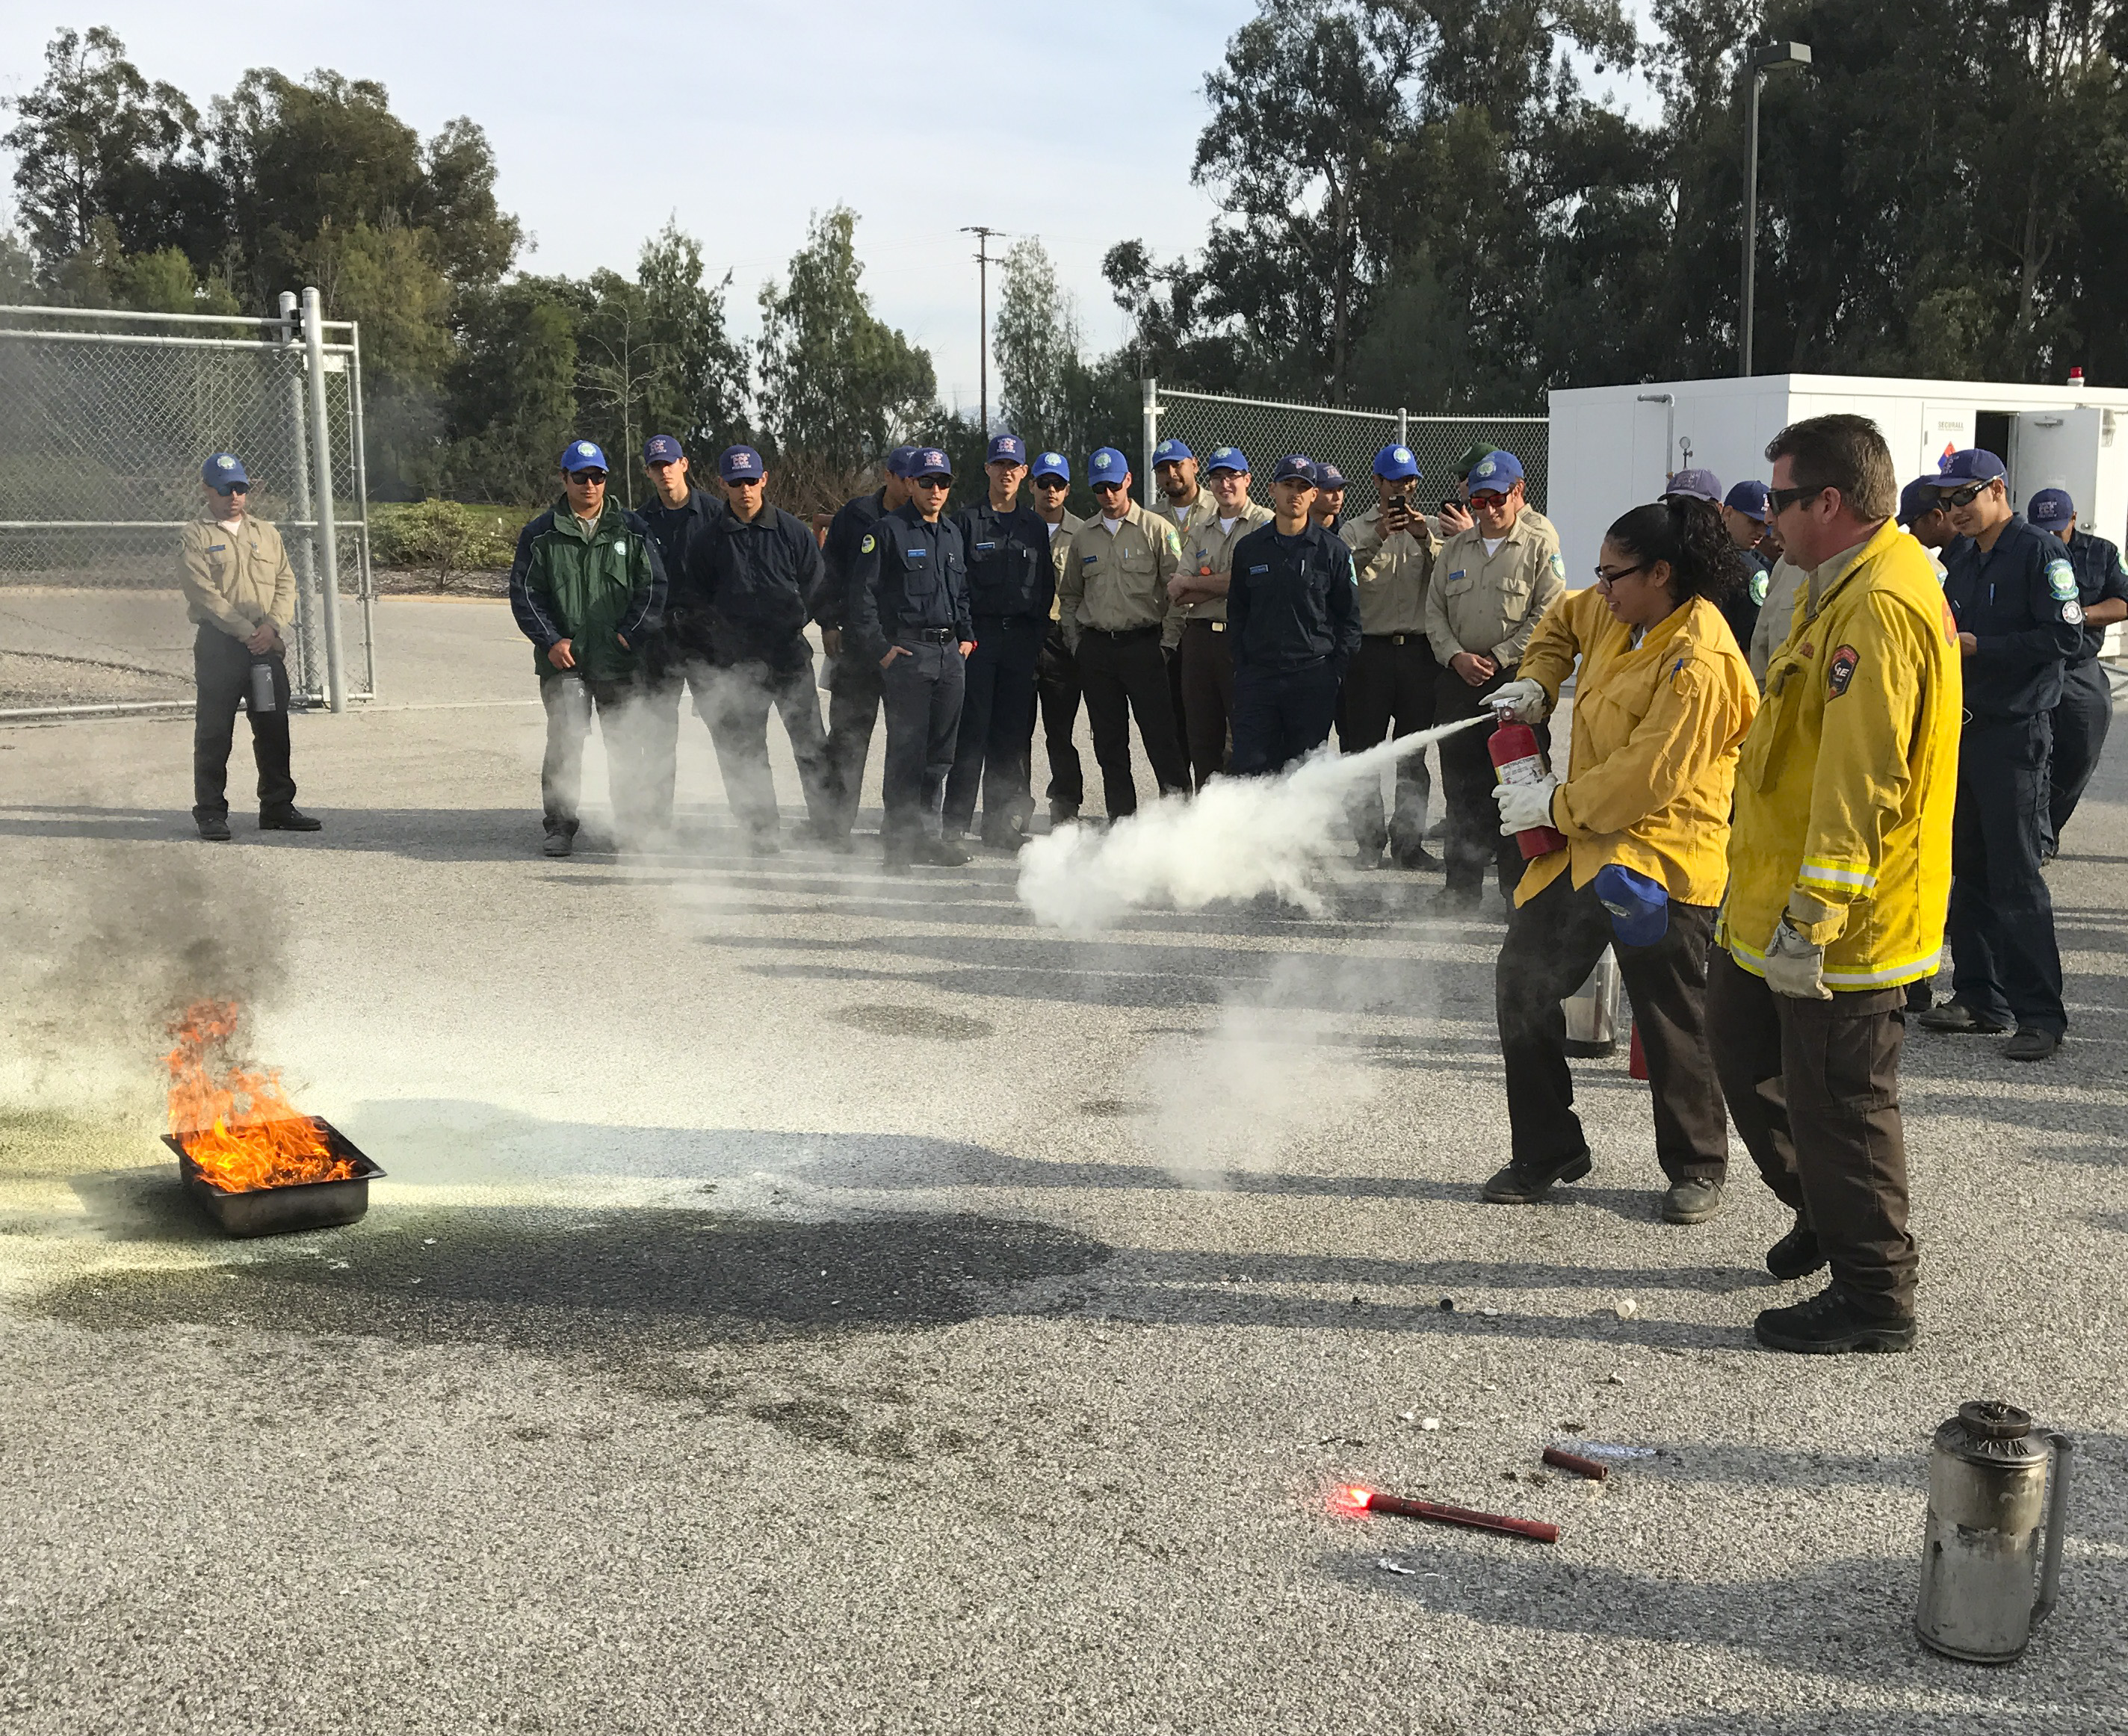 Corpsmembers learning how to use a fire extinguisher properly by Cal Fire.